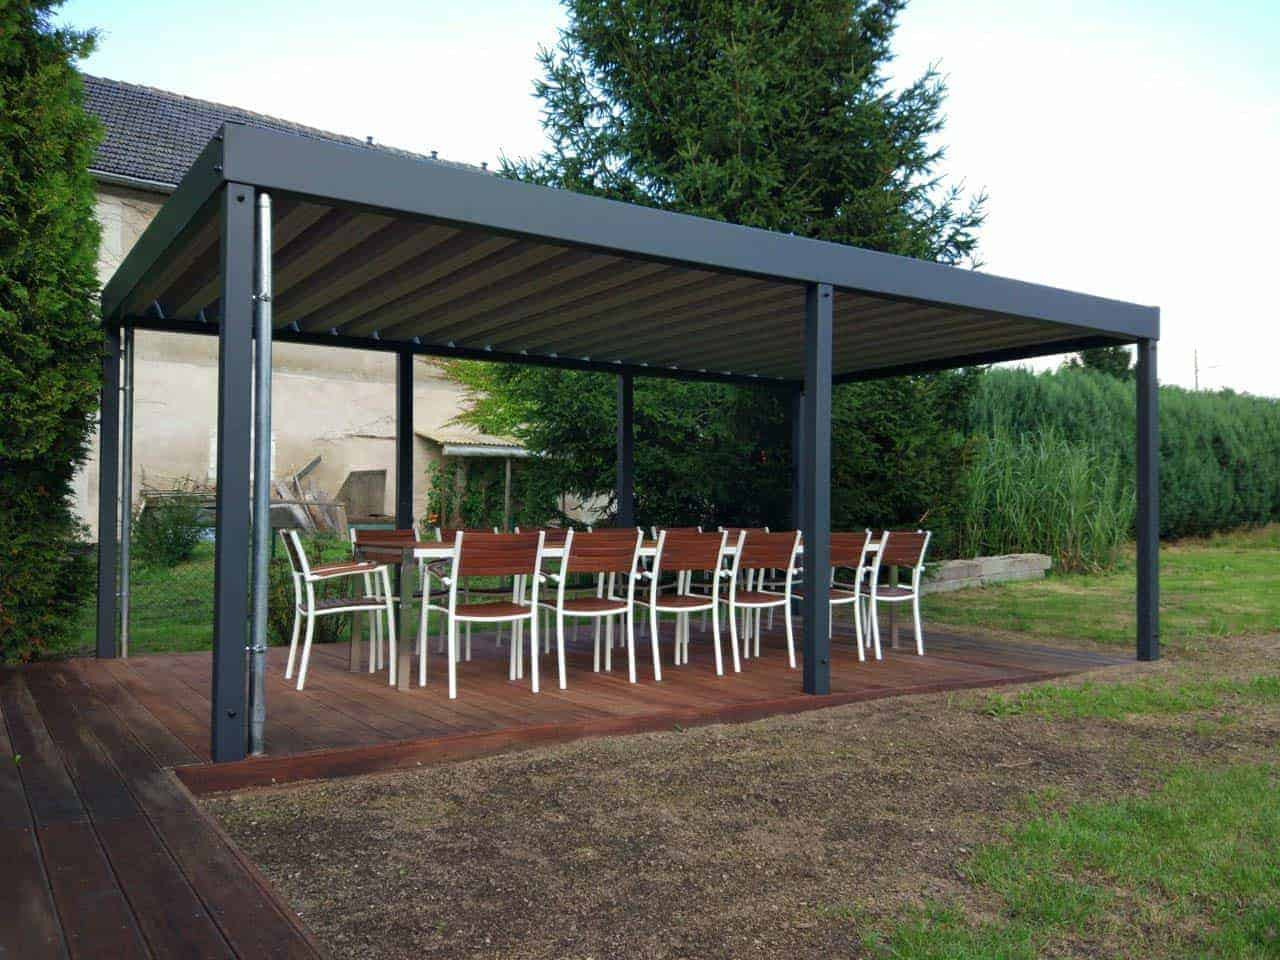 pavillon holz metall pavillon 001 hochwertige carports aus metall und holz individuell mit. Black Bedroom Furniture Sets. Home Design Ideas